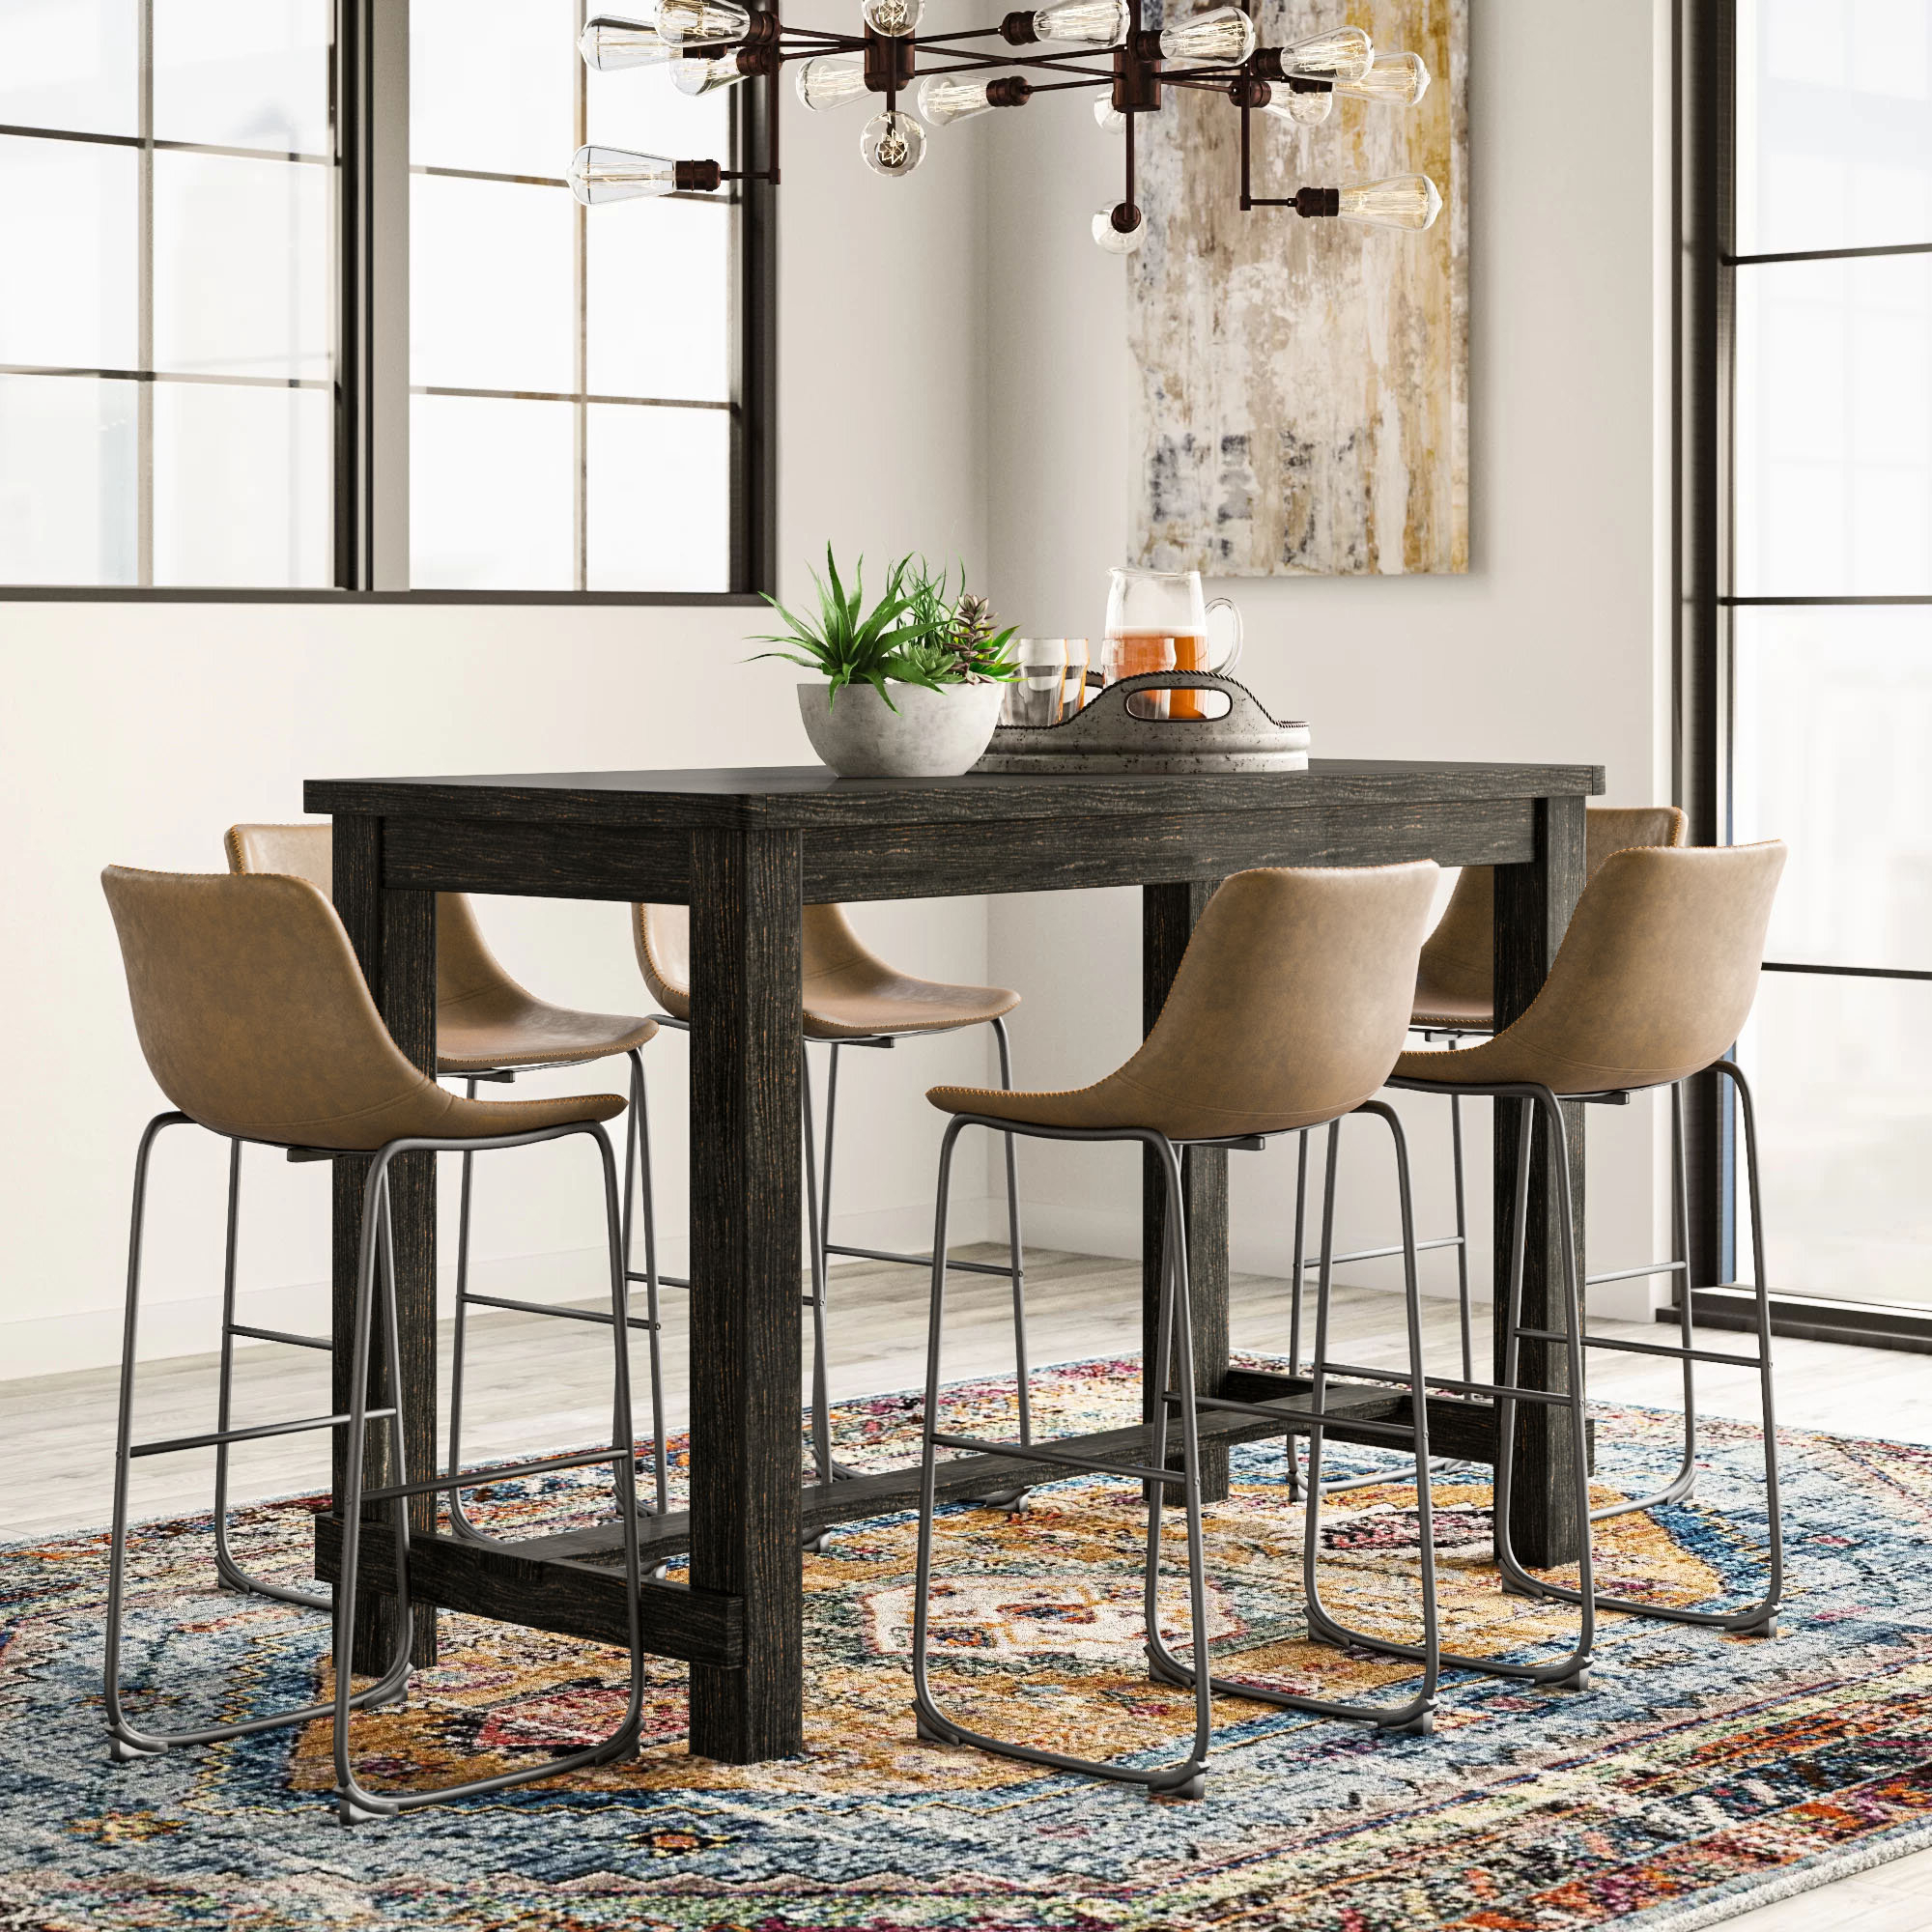 Wayfair Pertaining To Newest Biggs 5 Piece Counter Height Solid Wood Dining Sets (Set Of 5) (View 8 of 25)